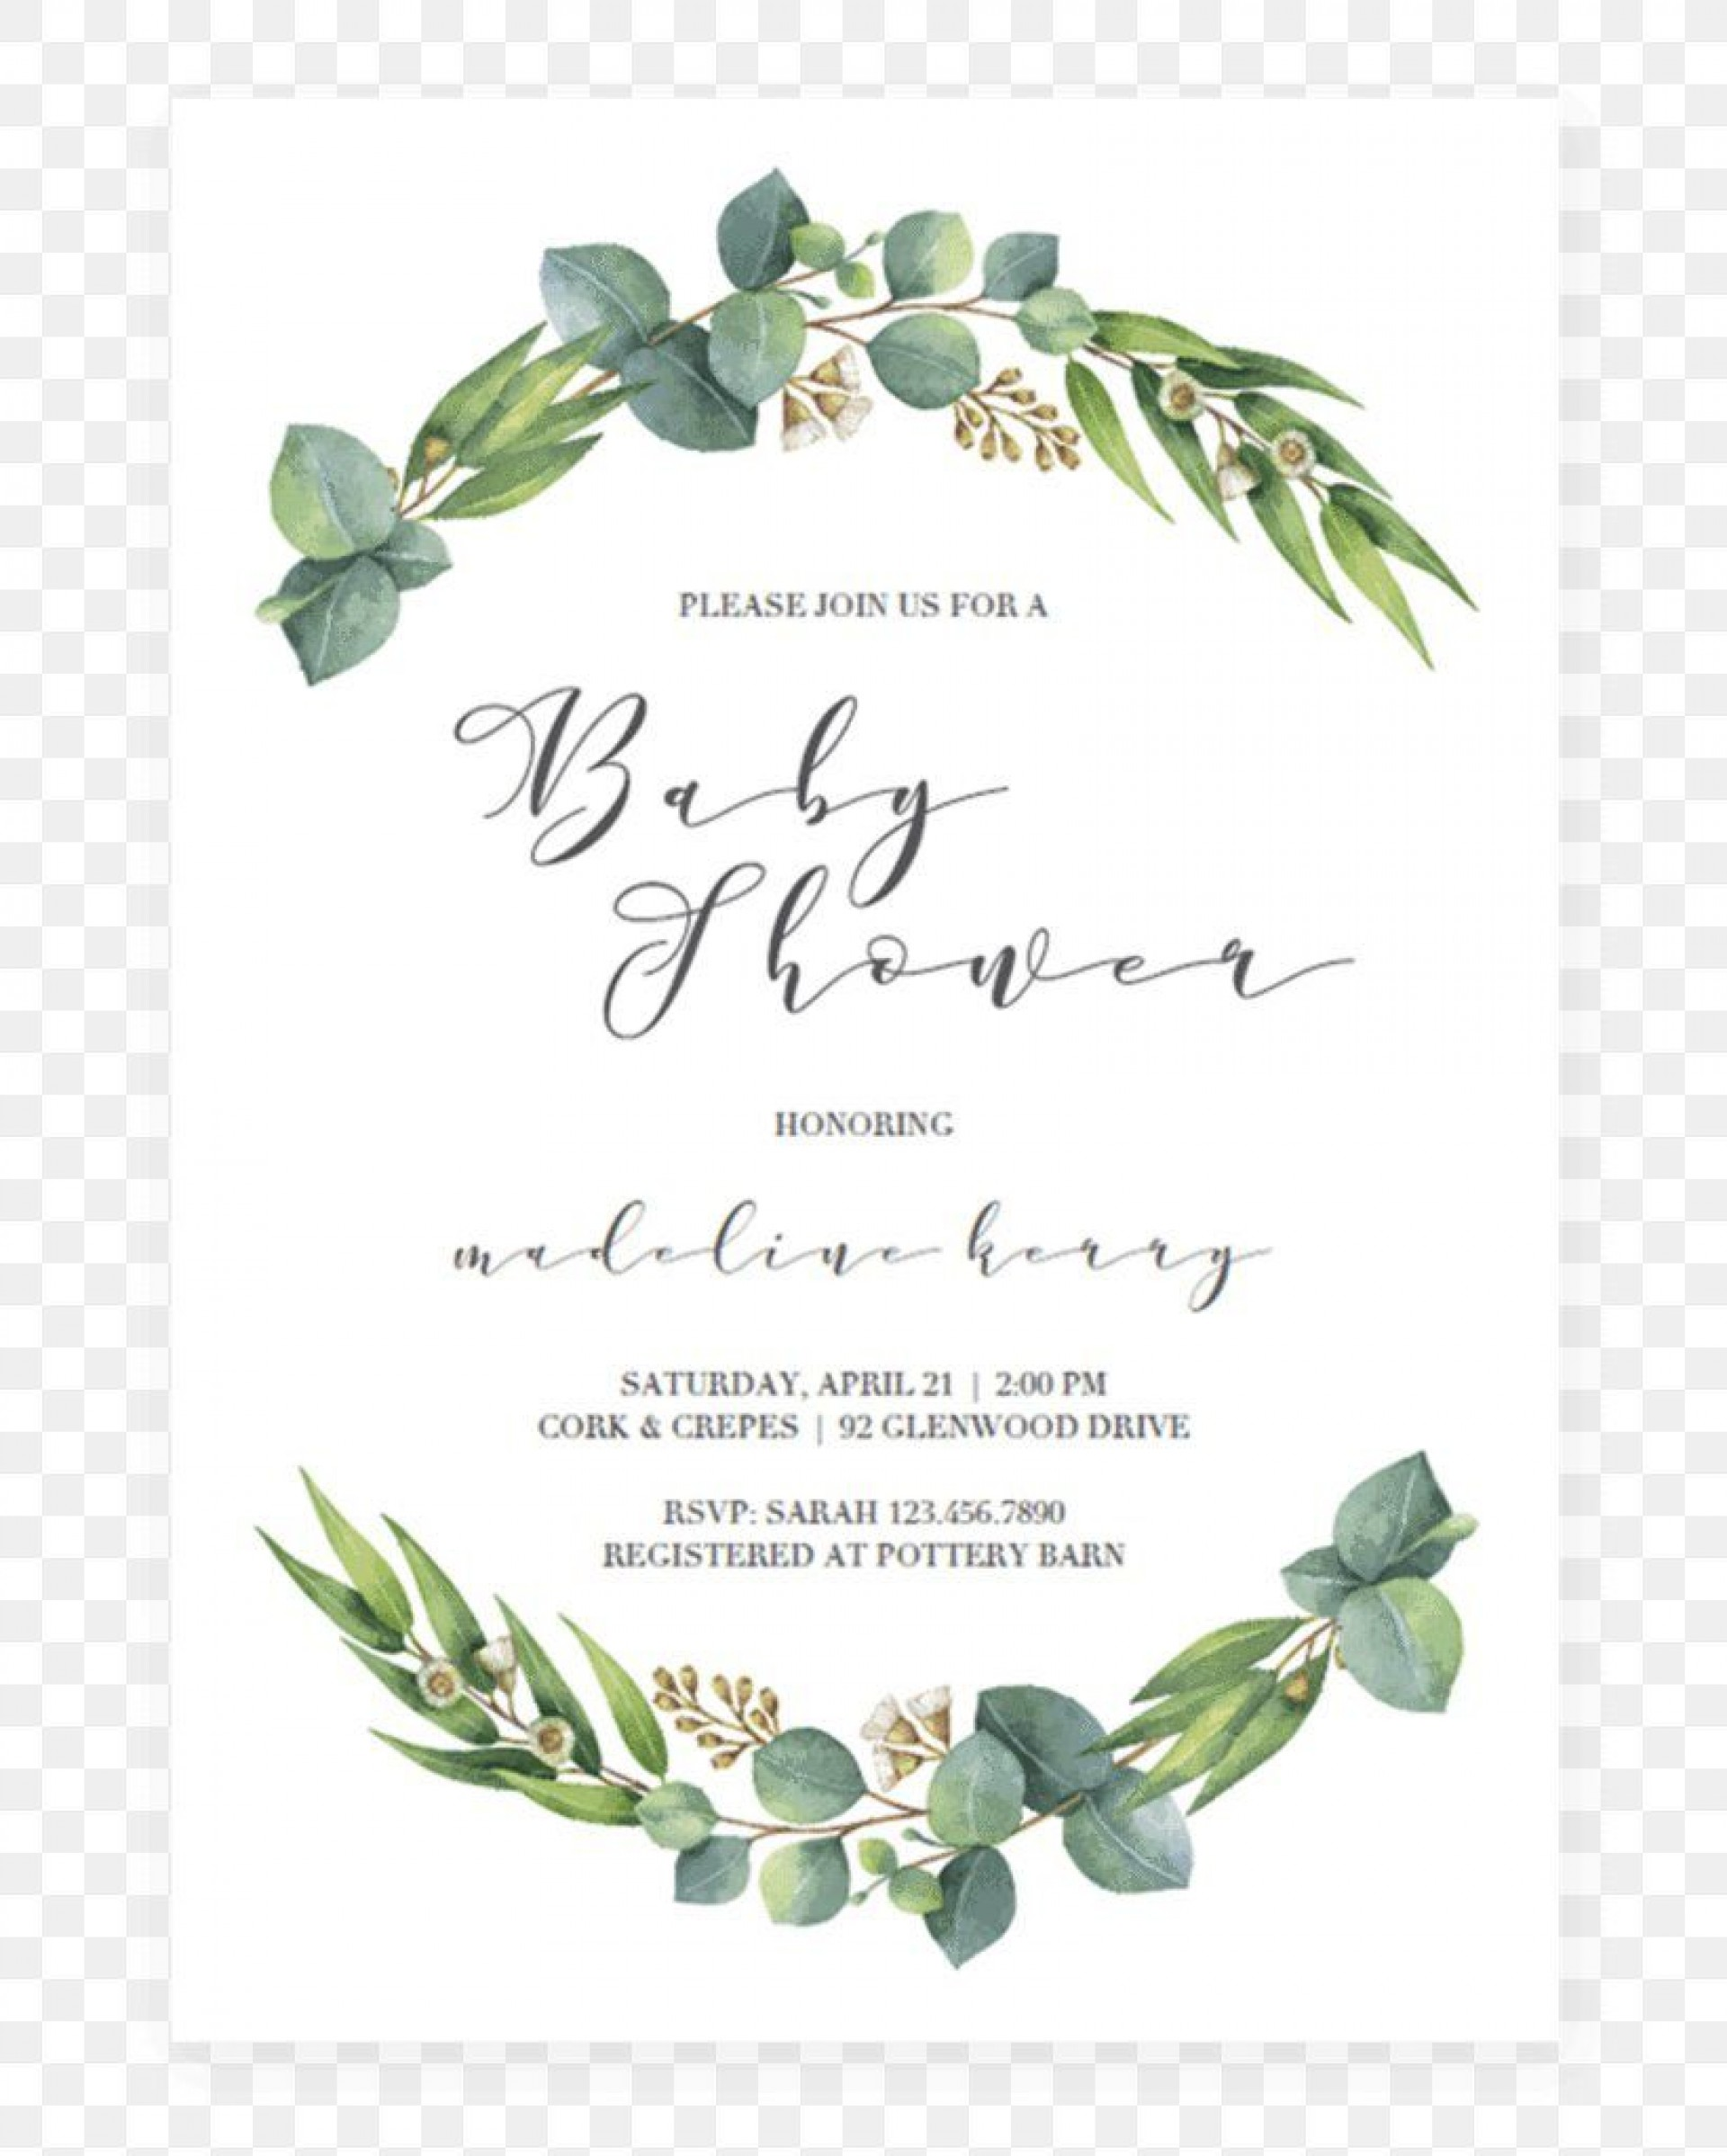 009 Impressive Free Download Wedding Invitation Template For Word Idea  Indian Microsoft1920